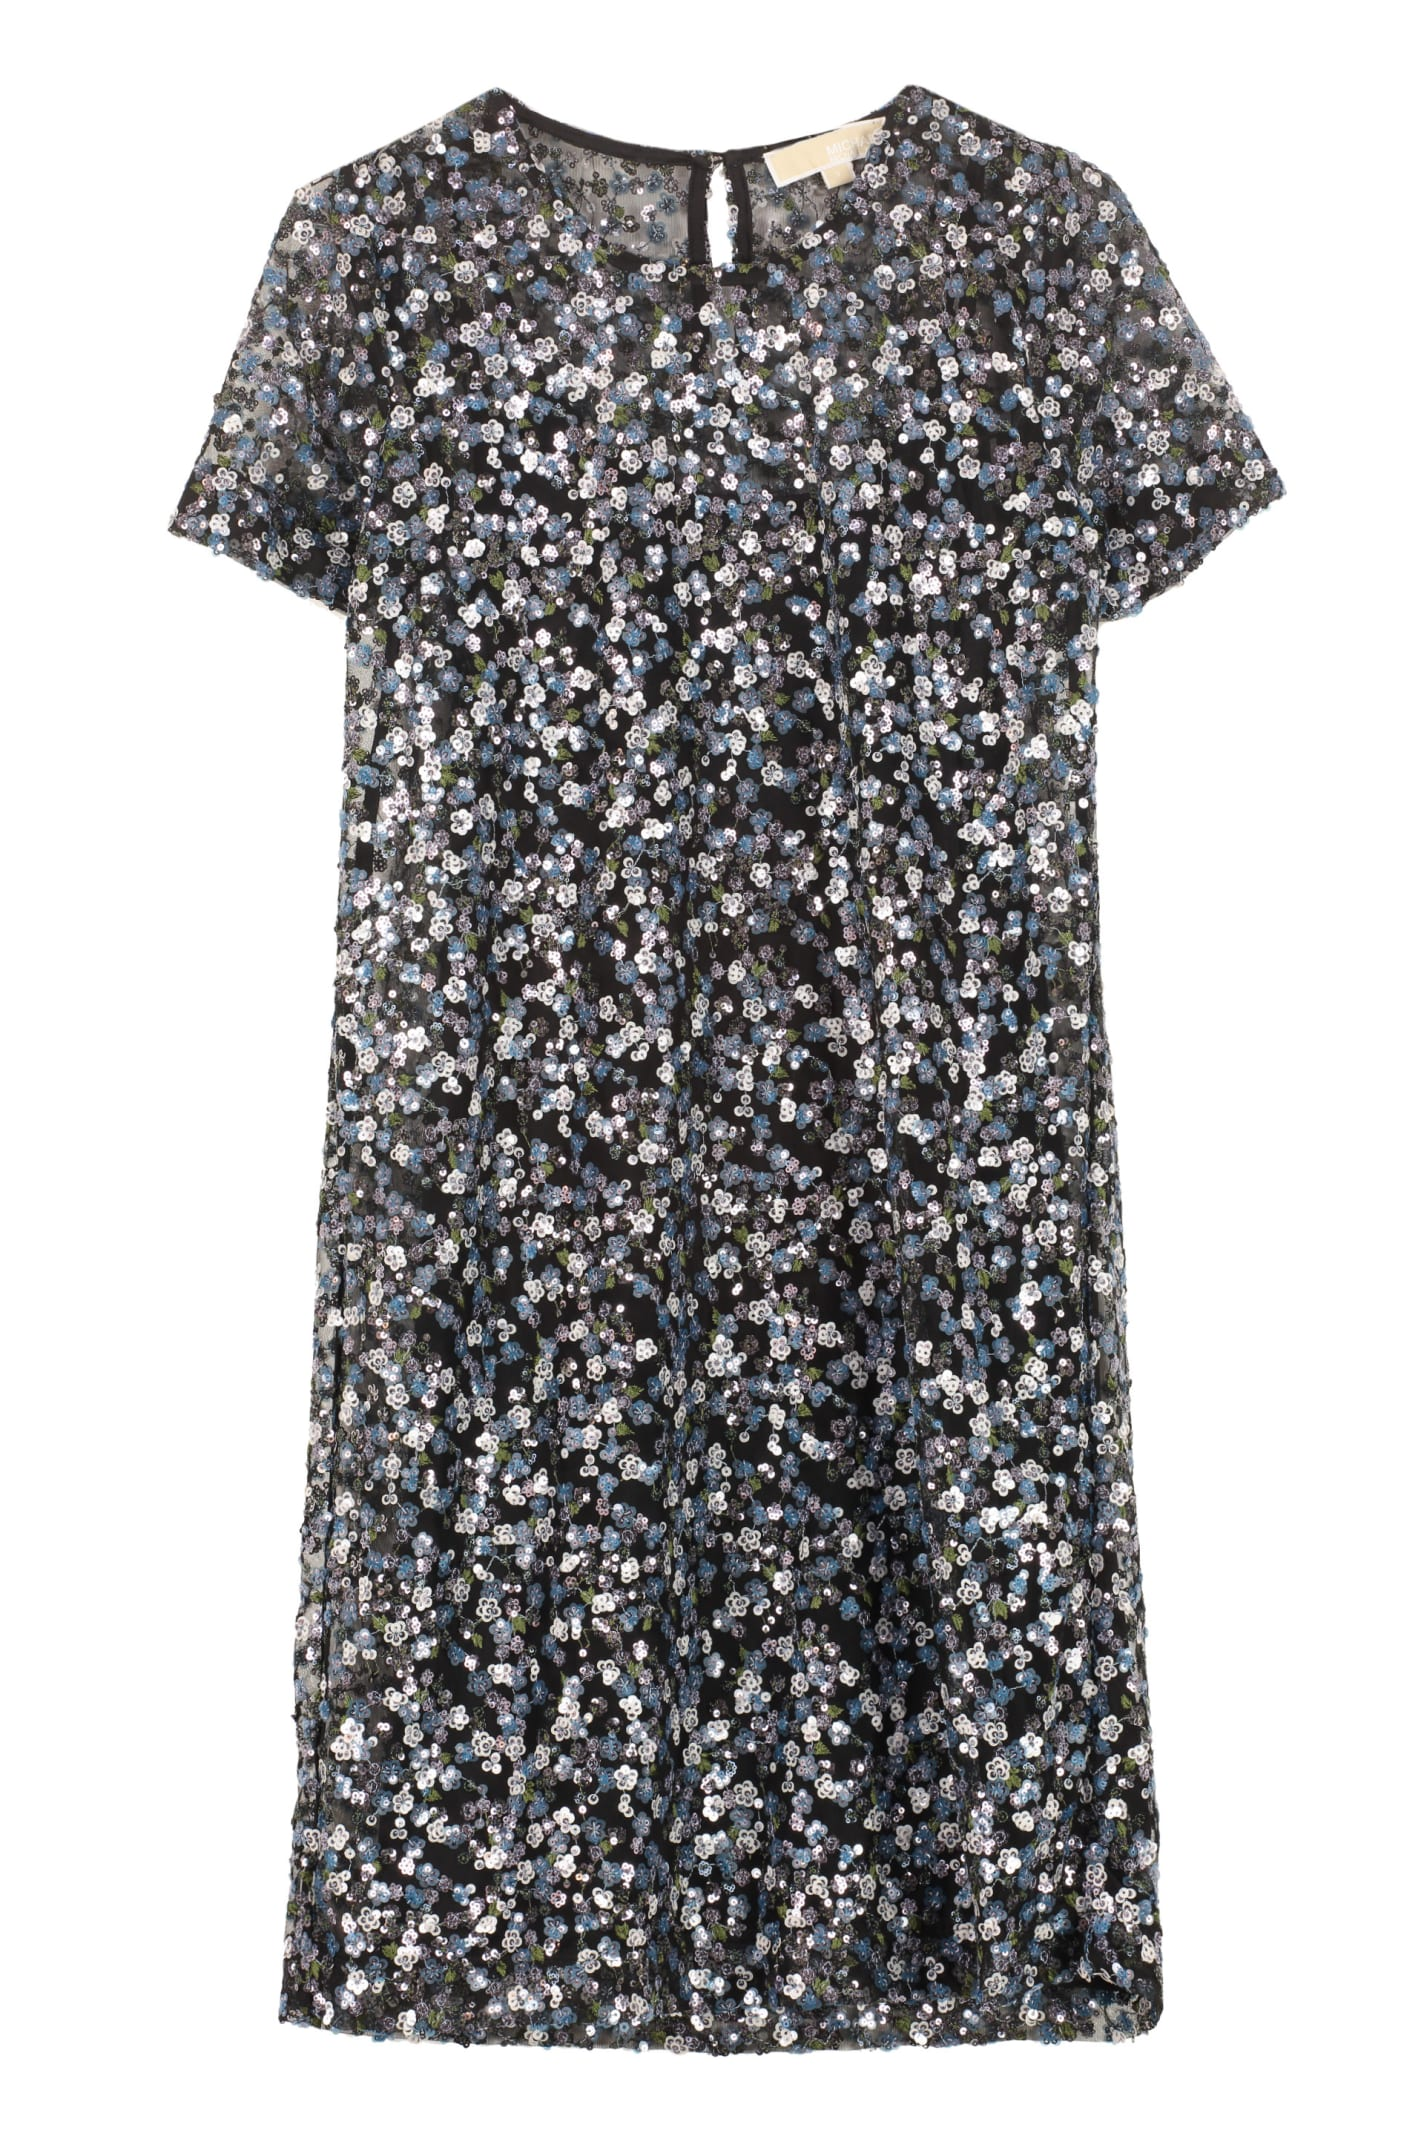 Buy MICHAEL Michael Kors Embroidered Mini Dress online, shop MICHAEL Michael Kors with free shipping